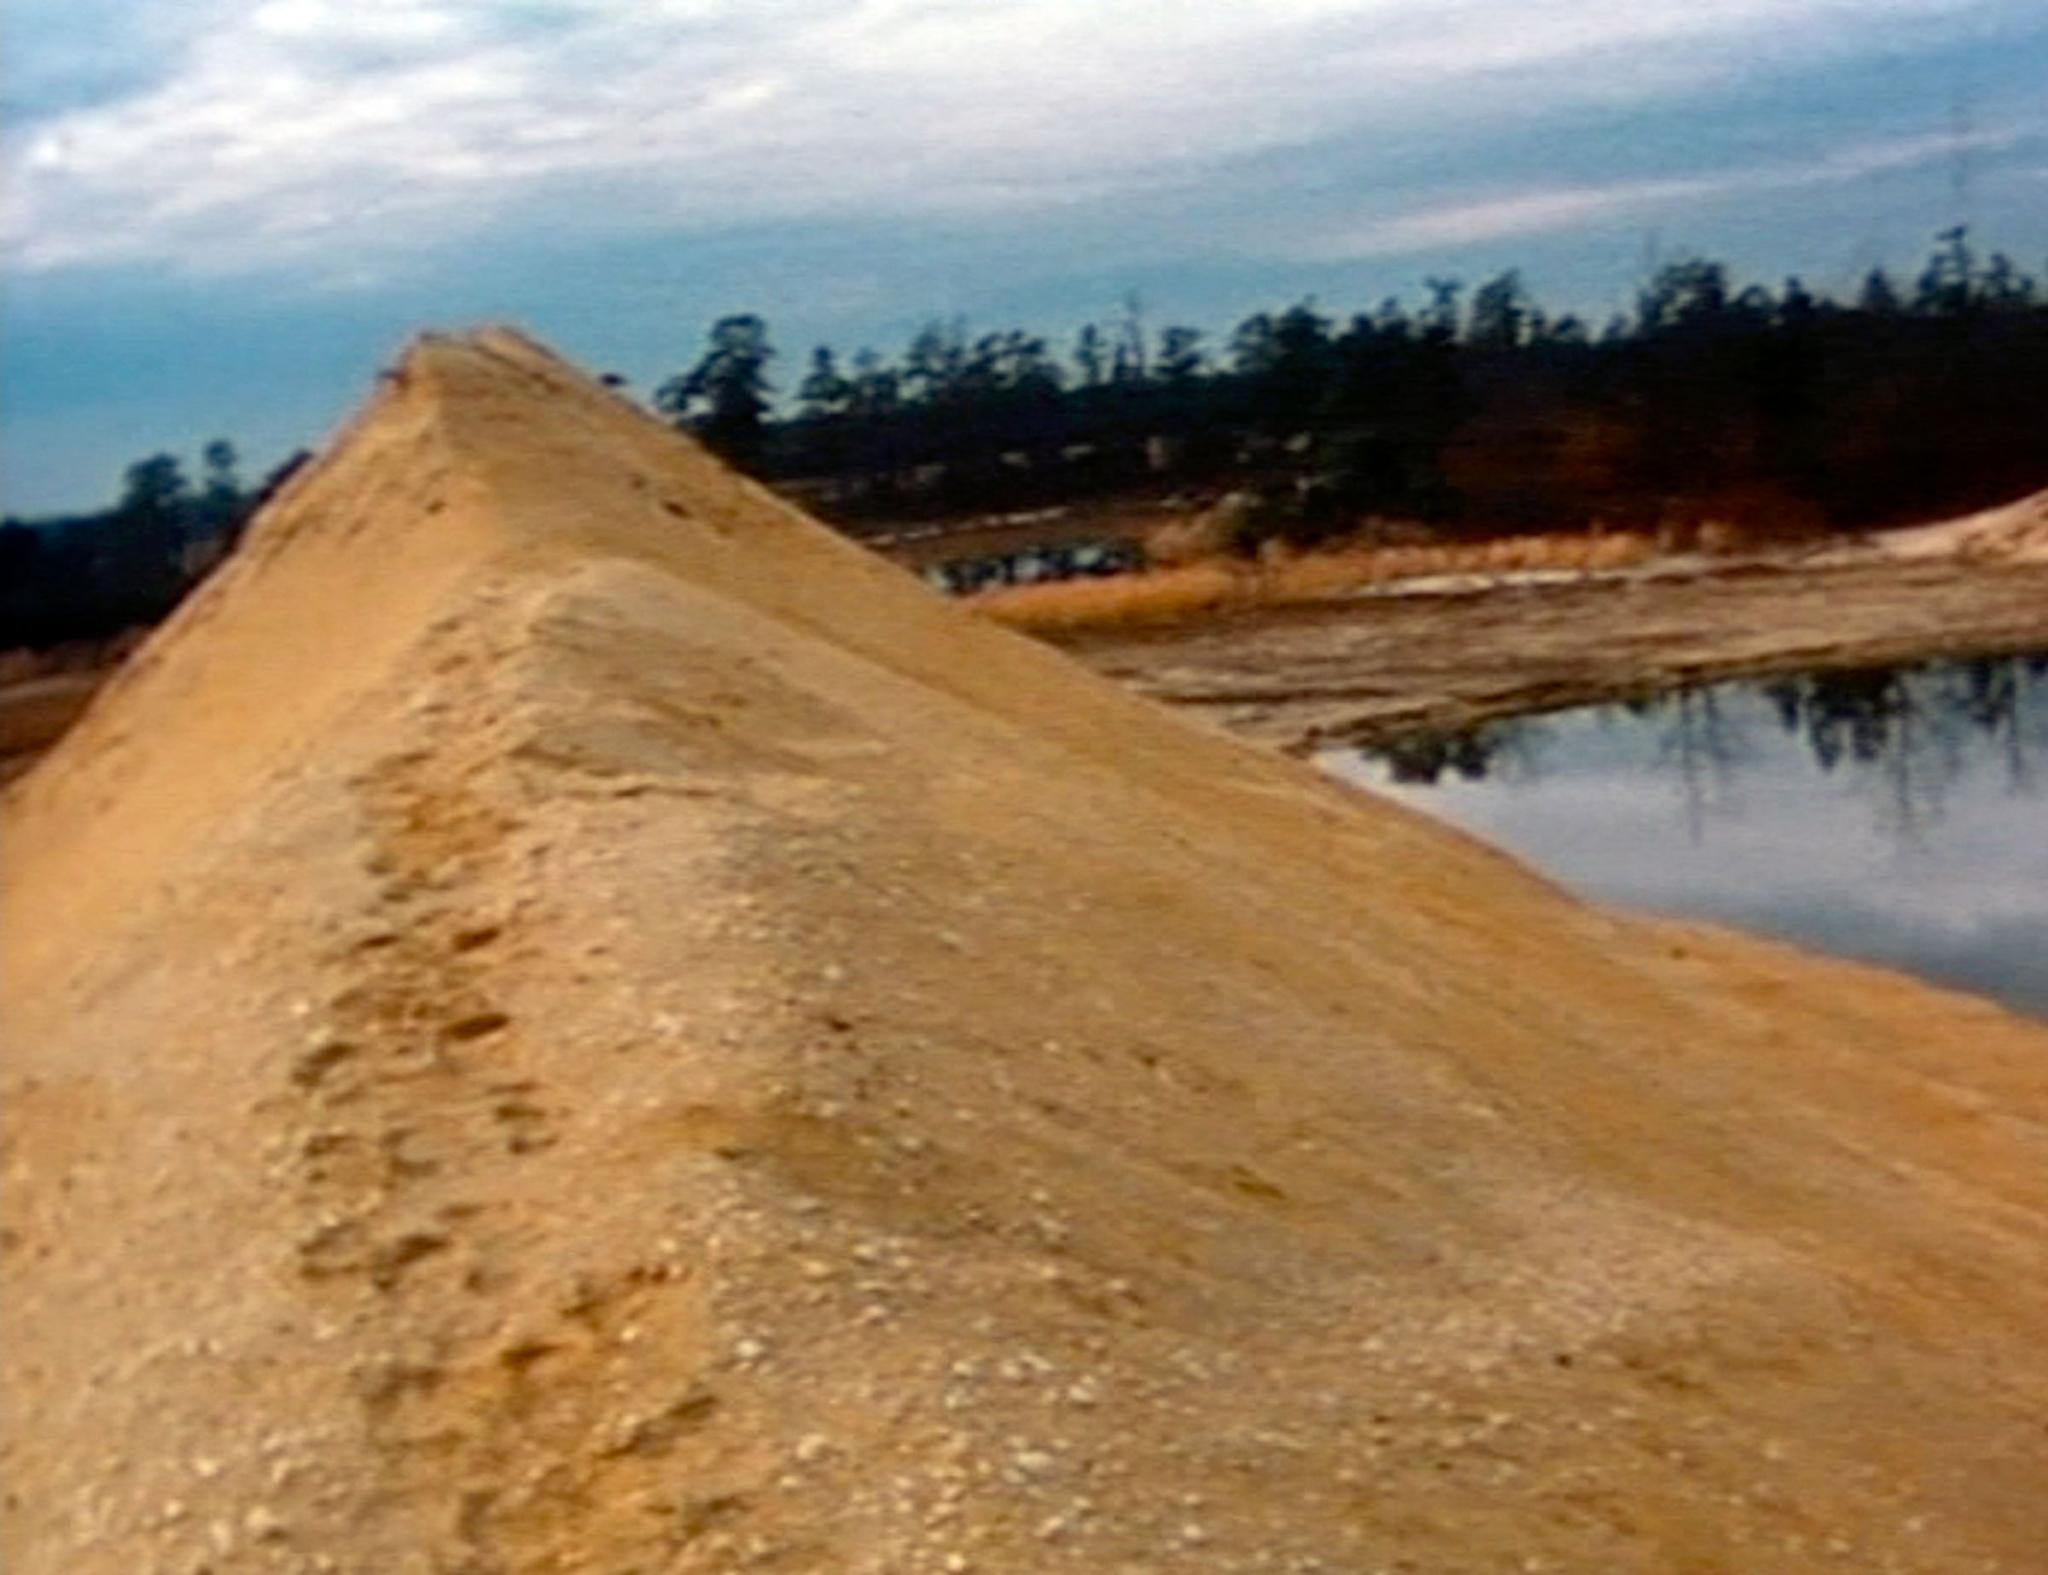 A still image of a mound of earth in Pine Barrens, New Jersey.